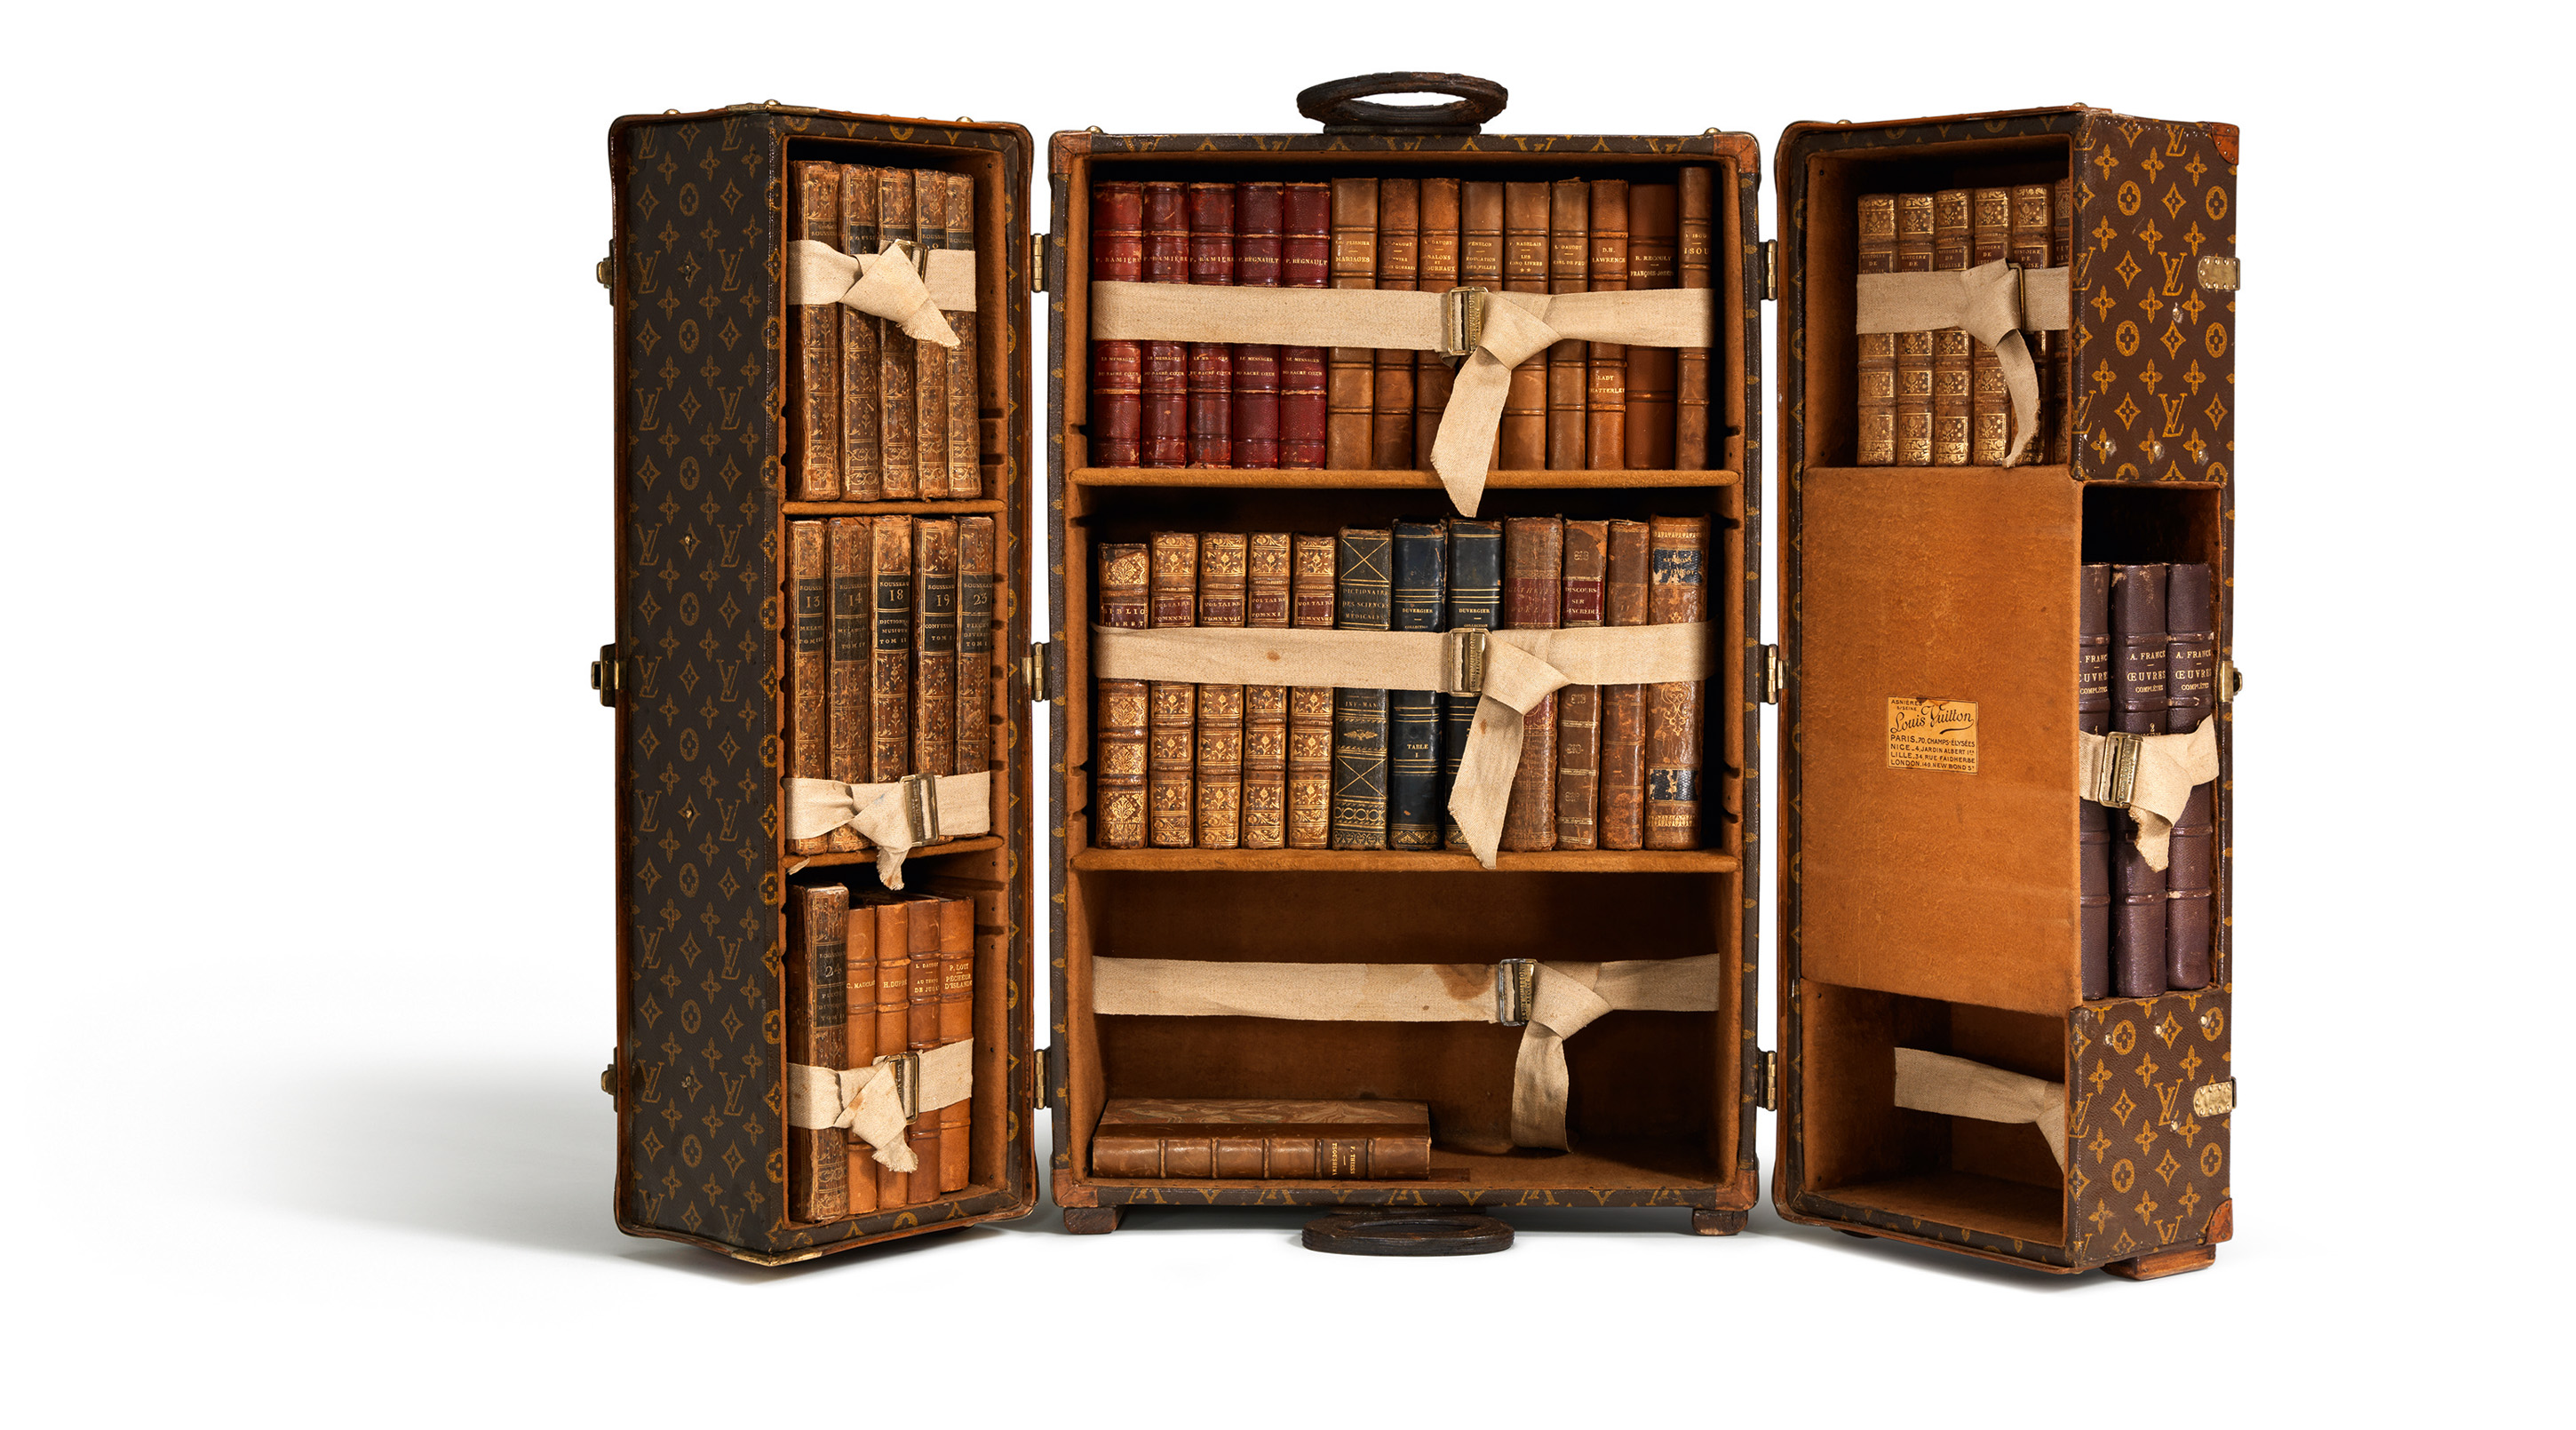 louis vuitton celebrates 100 legendary trunks. Black Bedroom Furniture Sets. Home Design Ideas